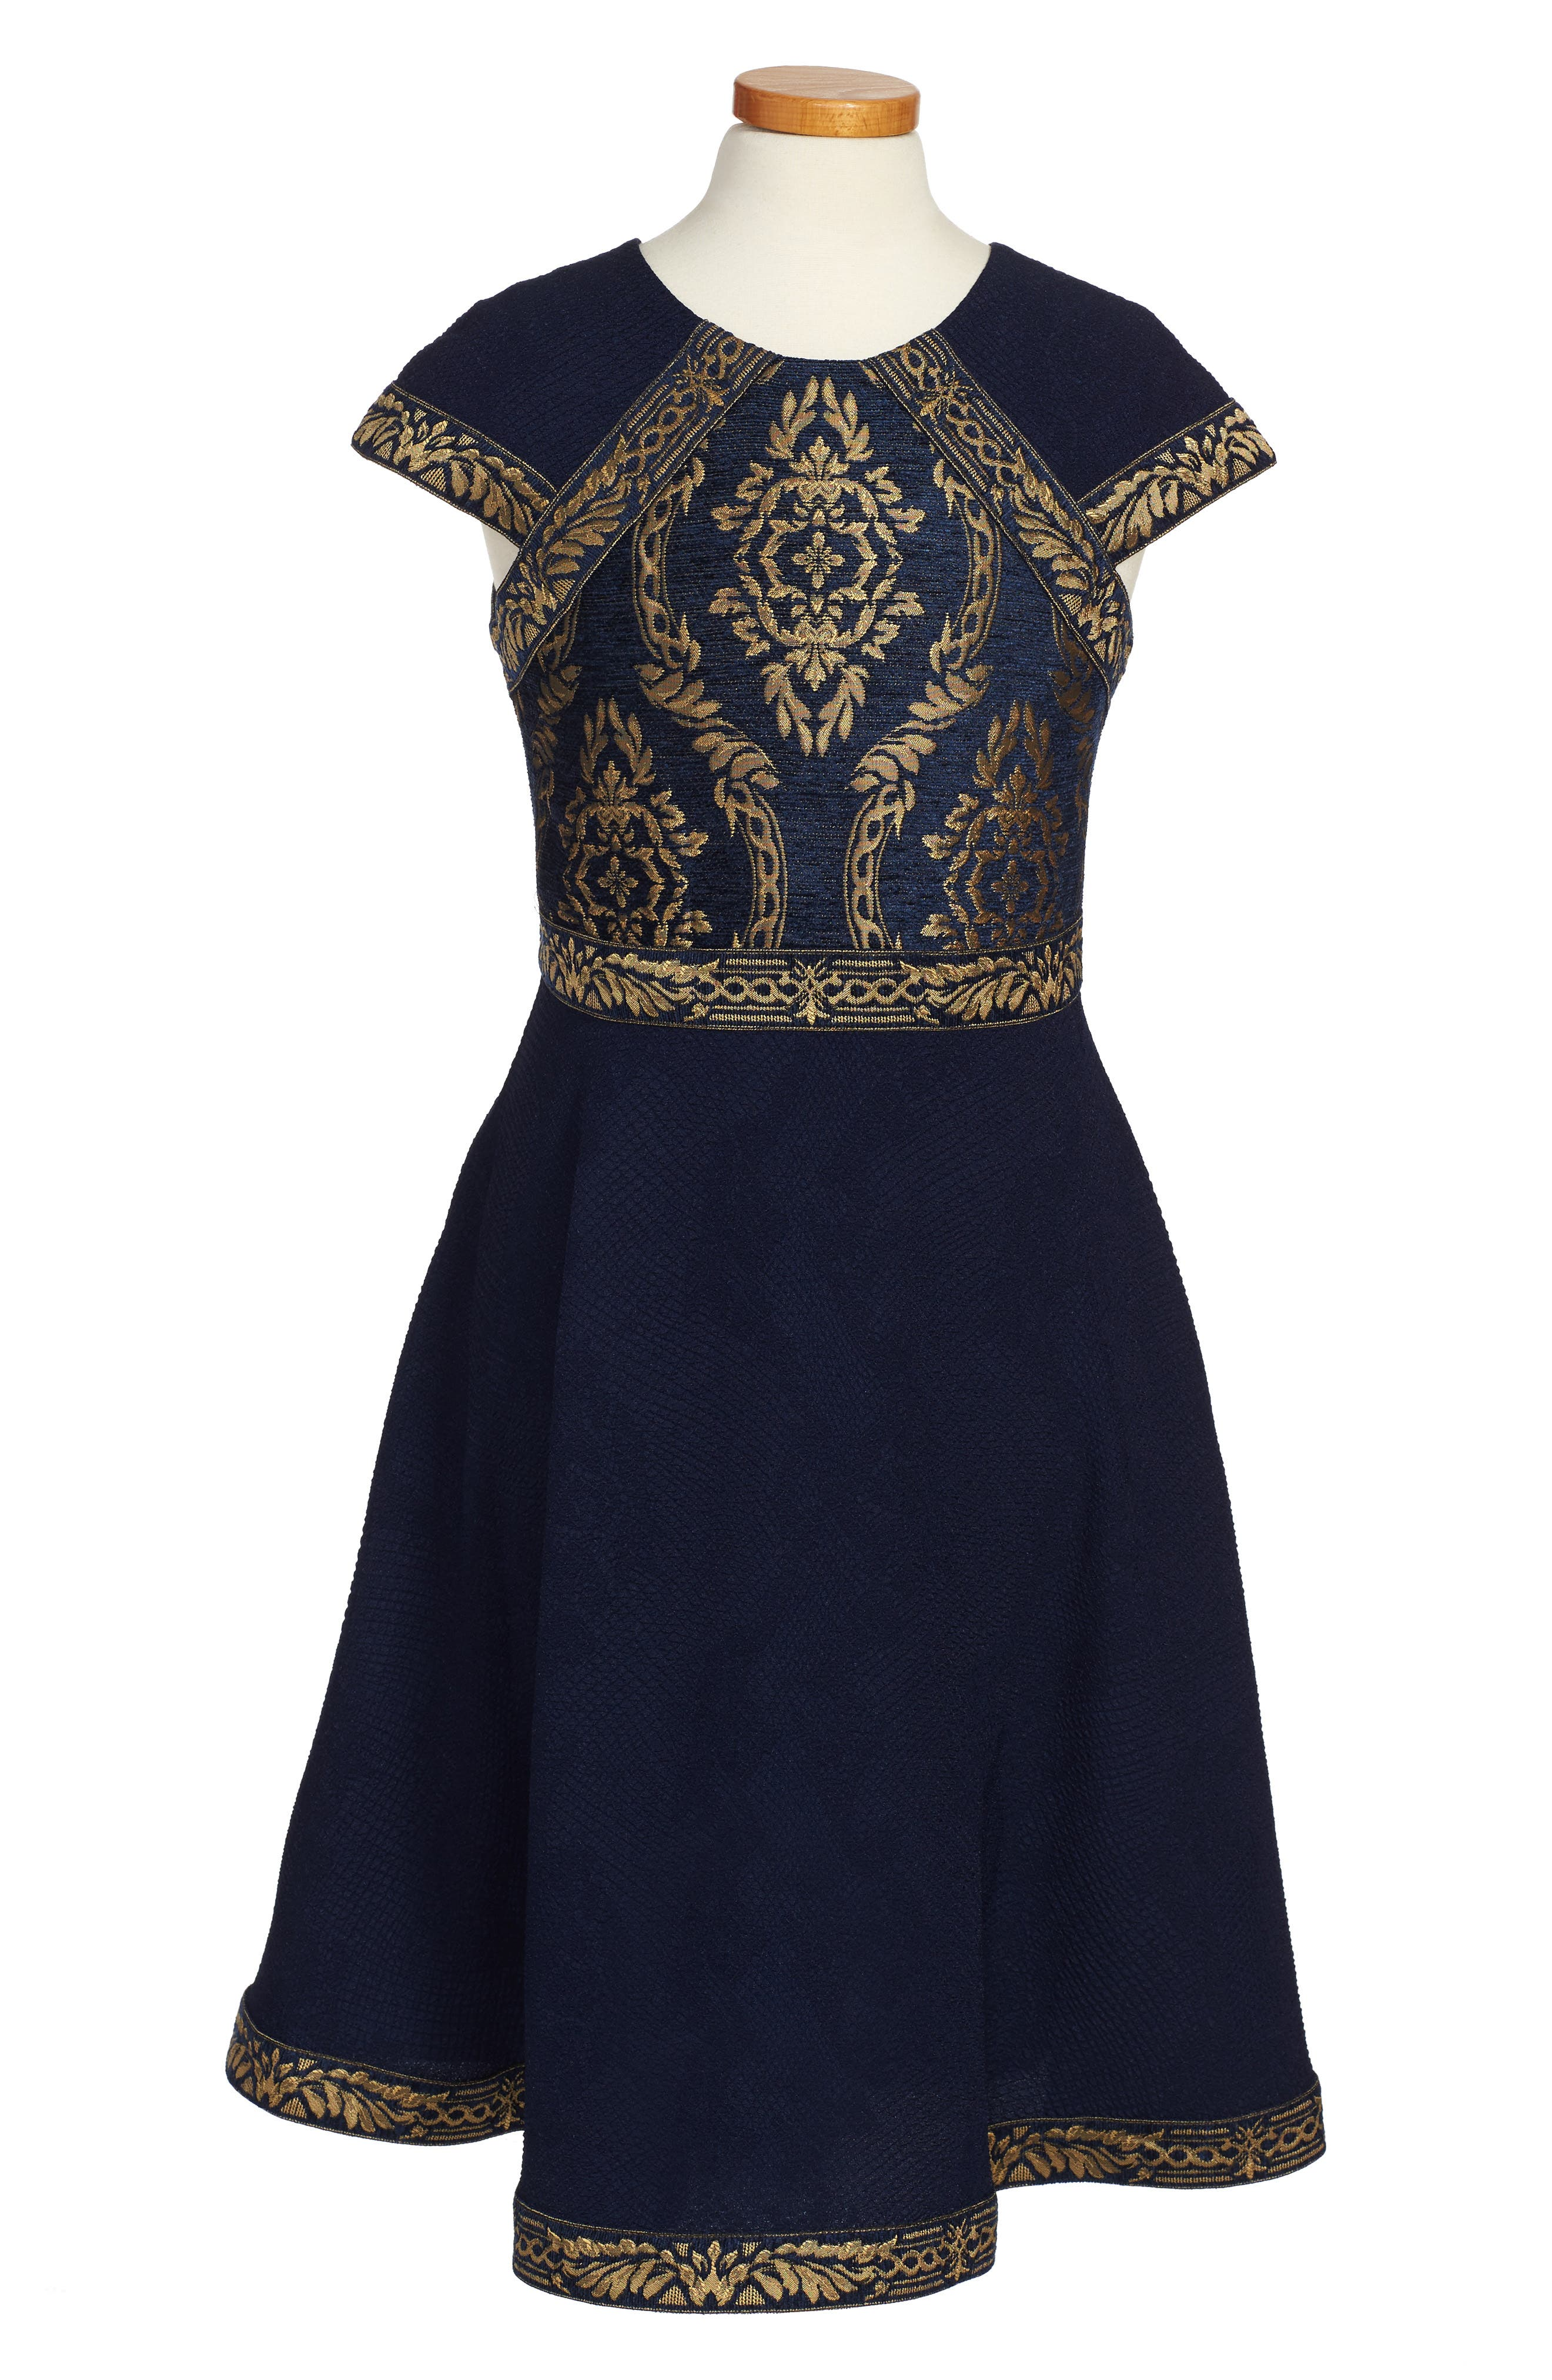 TADASHI SHOJI Brocade Embroidery Party Dress, Main, color, 400